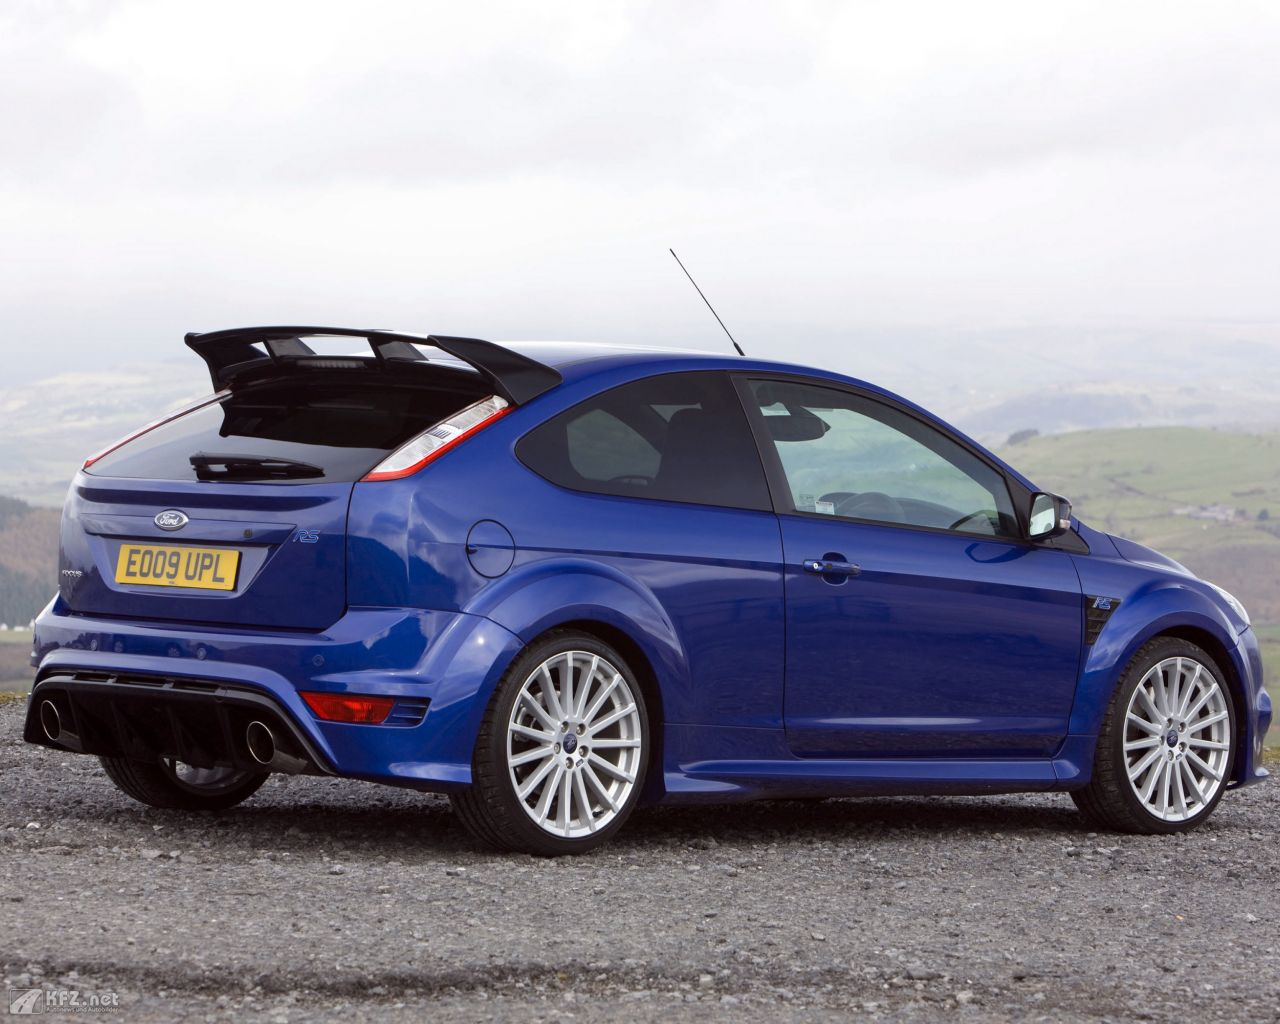 ford-focus-1280x1024-18